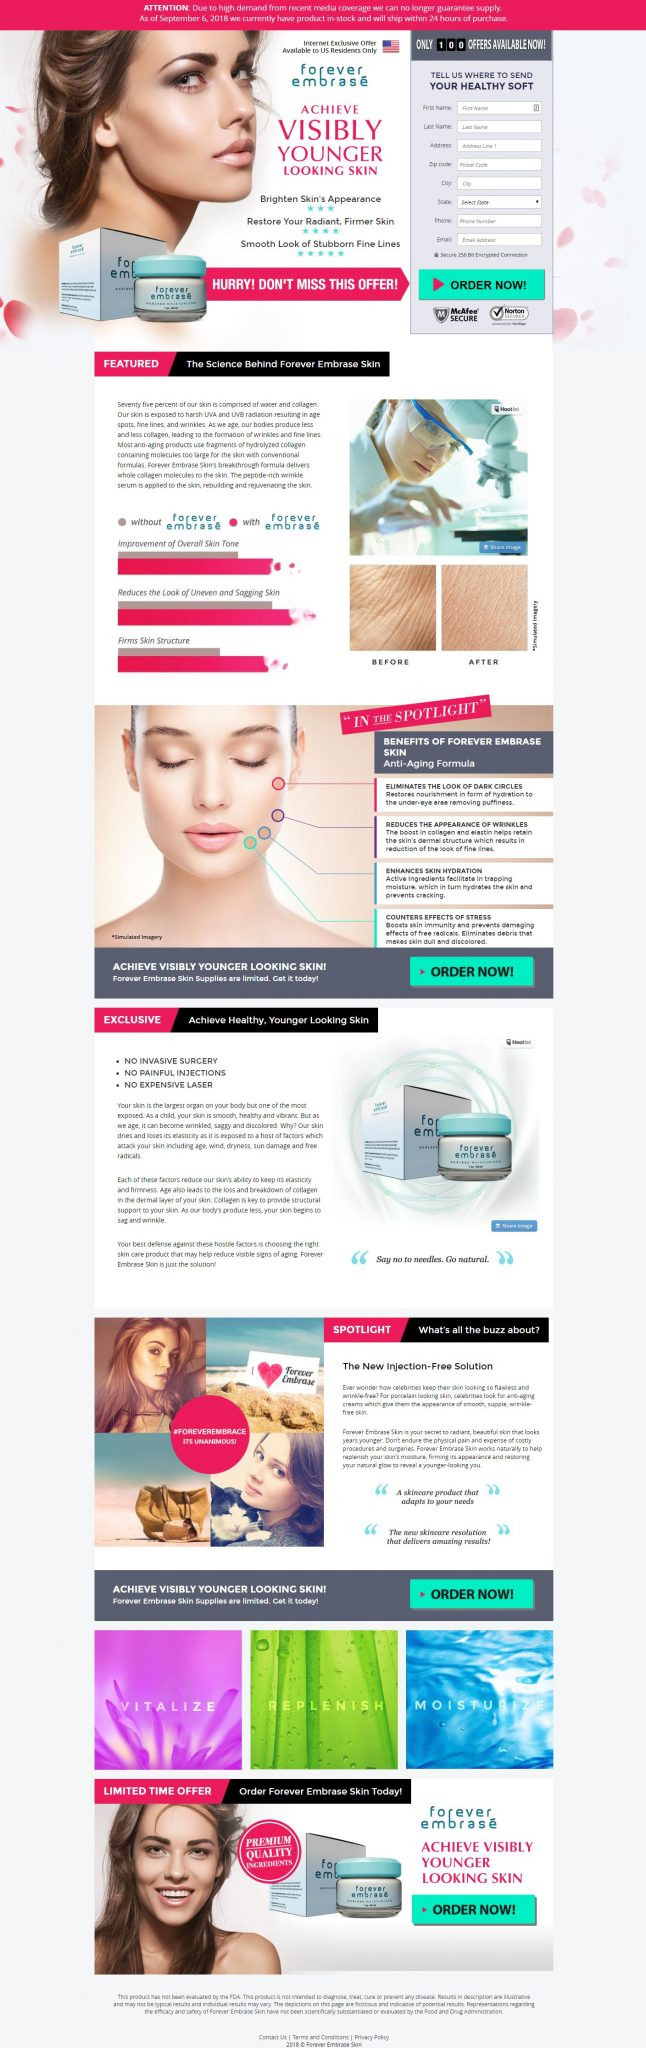 FOREVER EMBRACE - VISABLY YOUNGER LOOKING SKIN